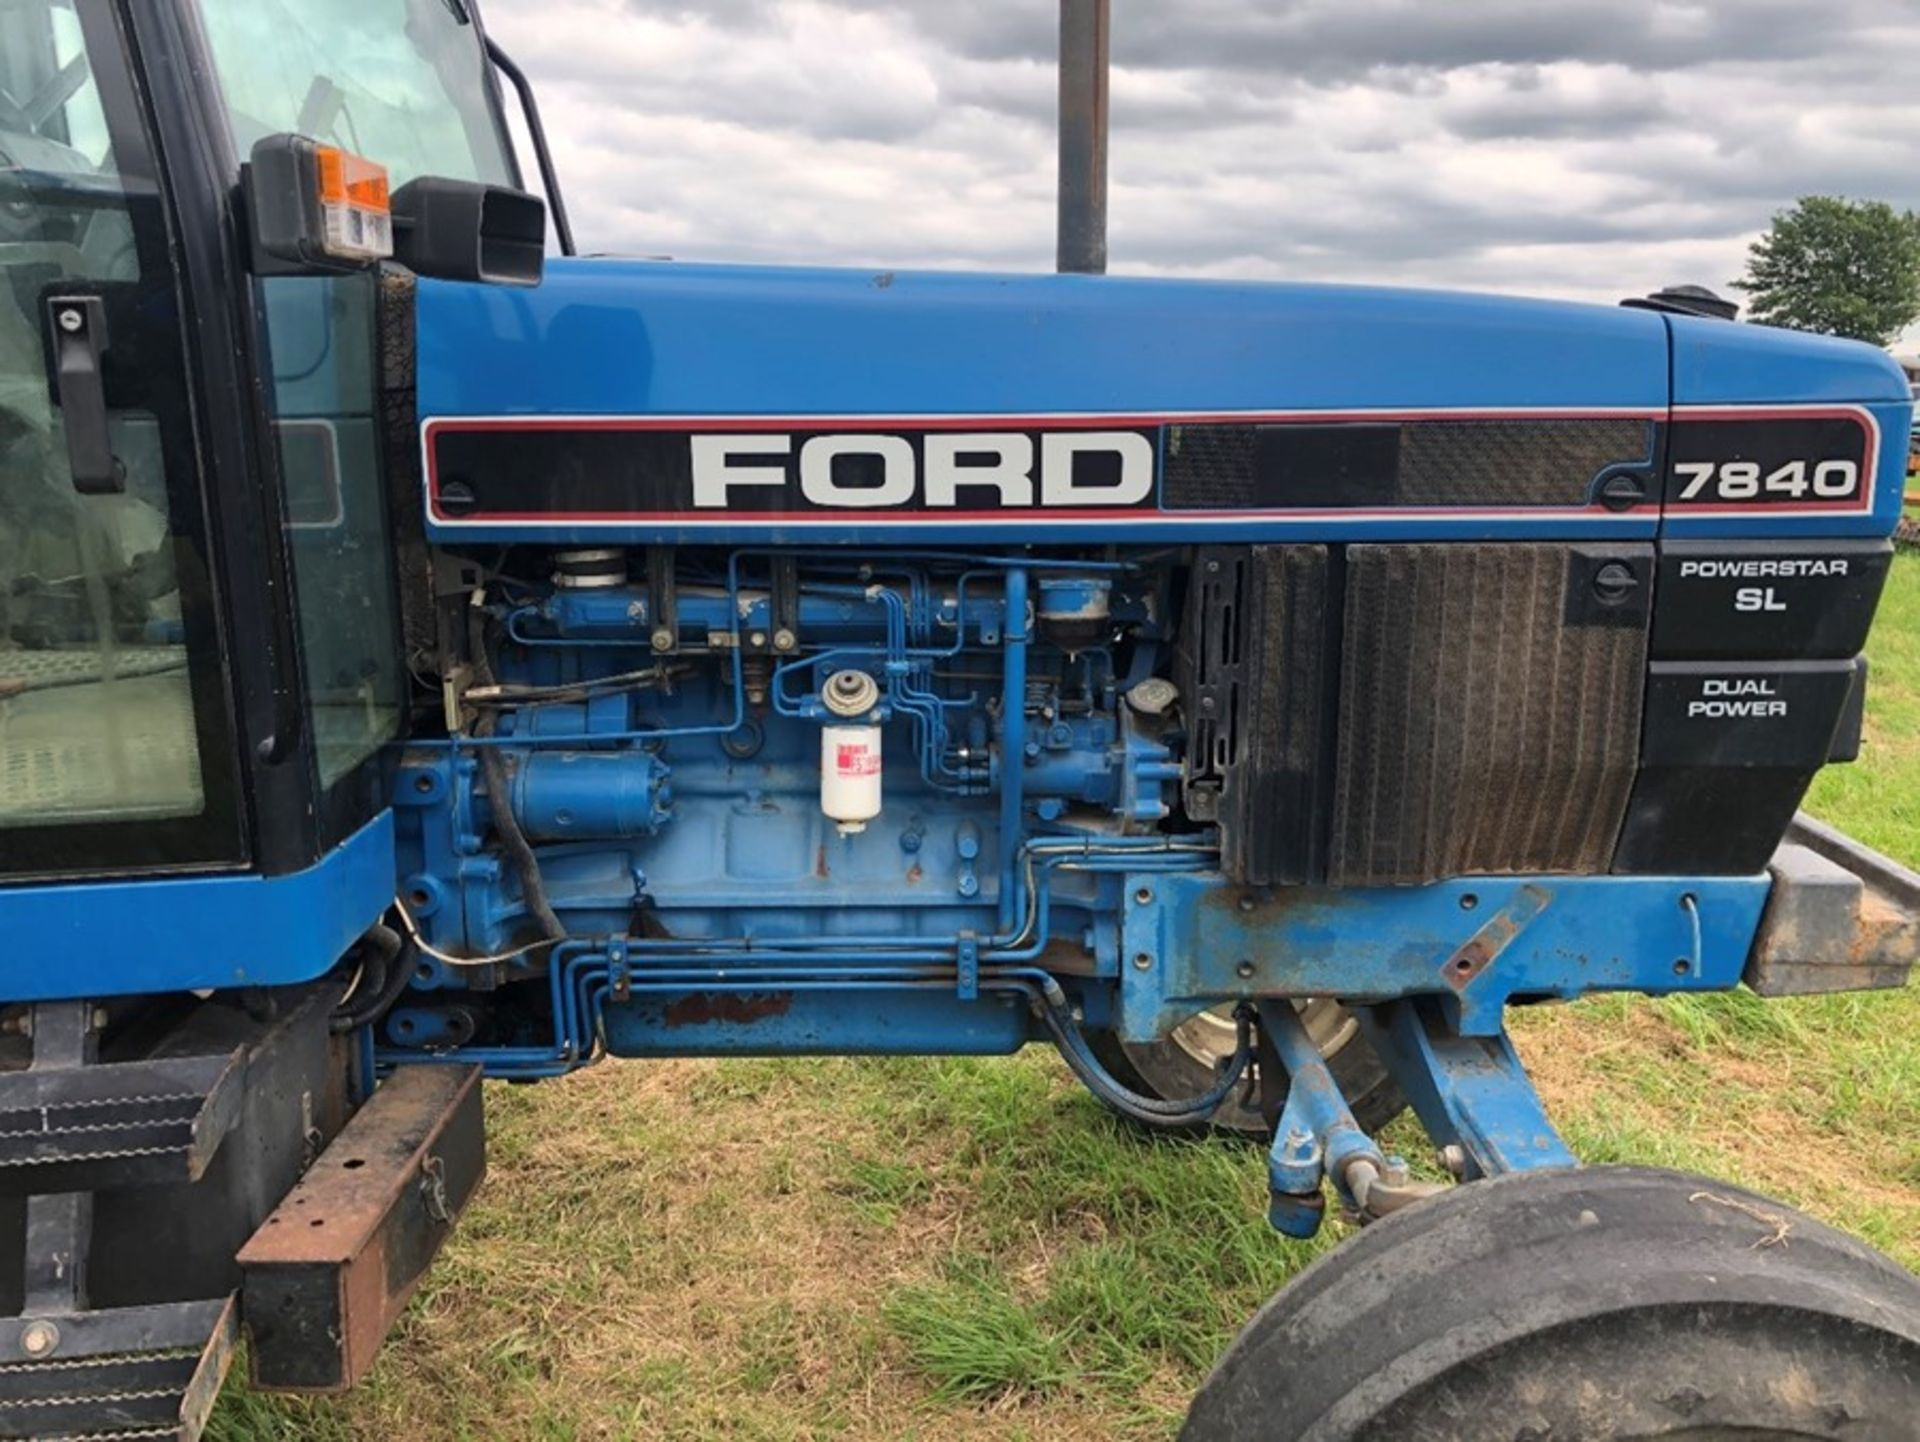 (94) Ford 7840 Powerstar SL 2wd tractor, 4,551 hours, dual power. air con, Reg L56 UVL, Rear 13.6 - Image 2 of 11